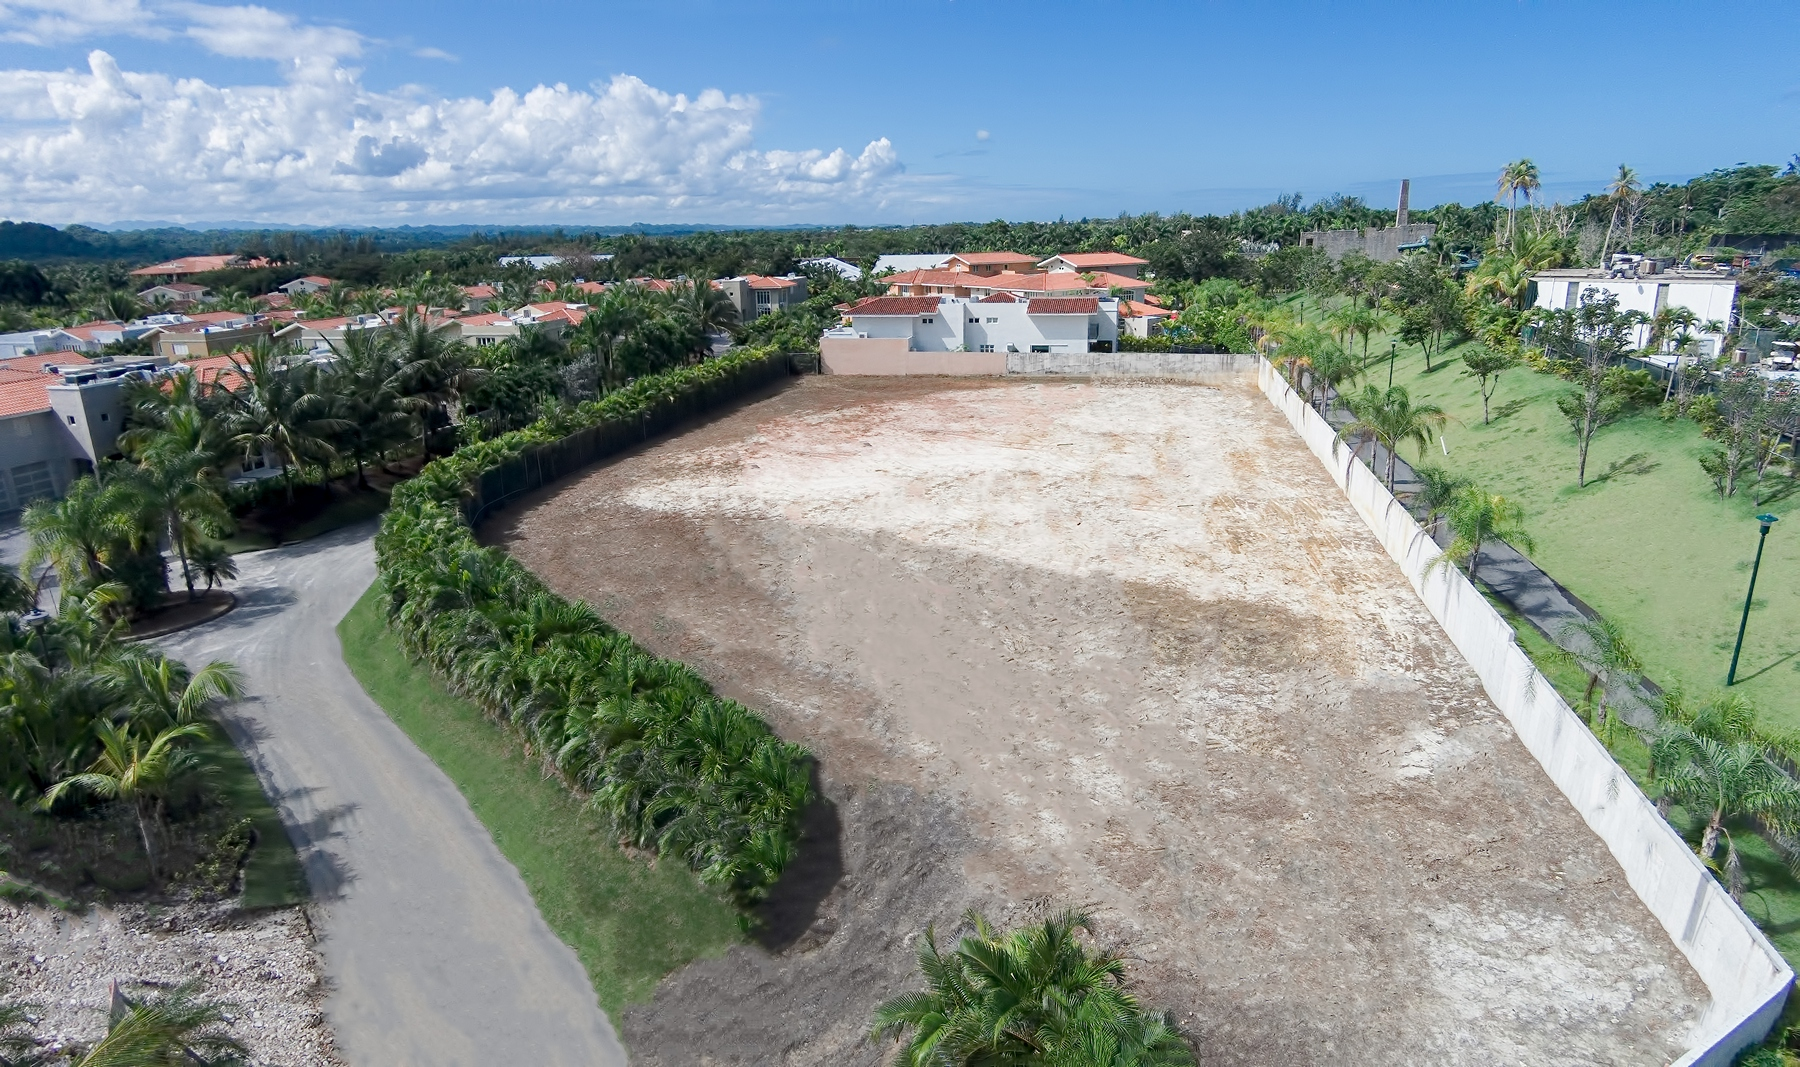 Land for Sale at Dorado Beach East Unique Lot Opportunity 323 Dorado Beach East Dorado, Puerto Rico 00646 Puerto Rico